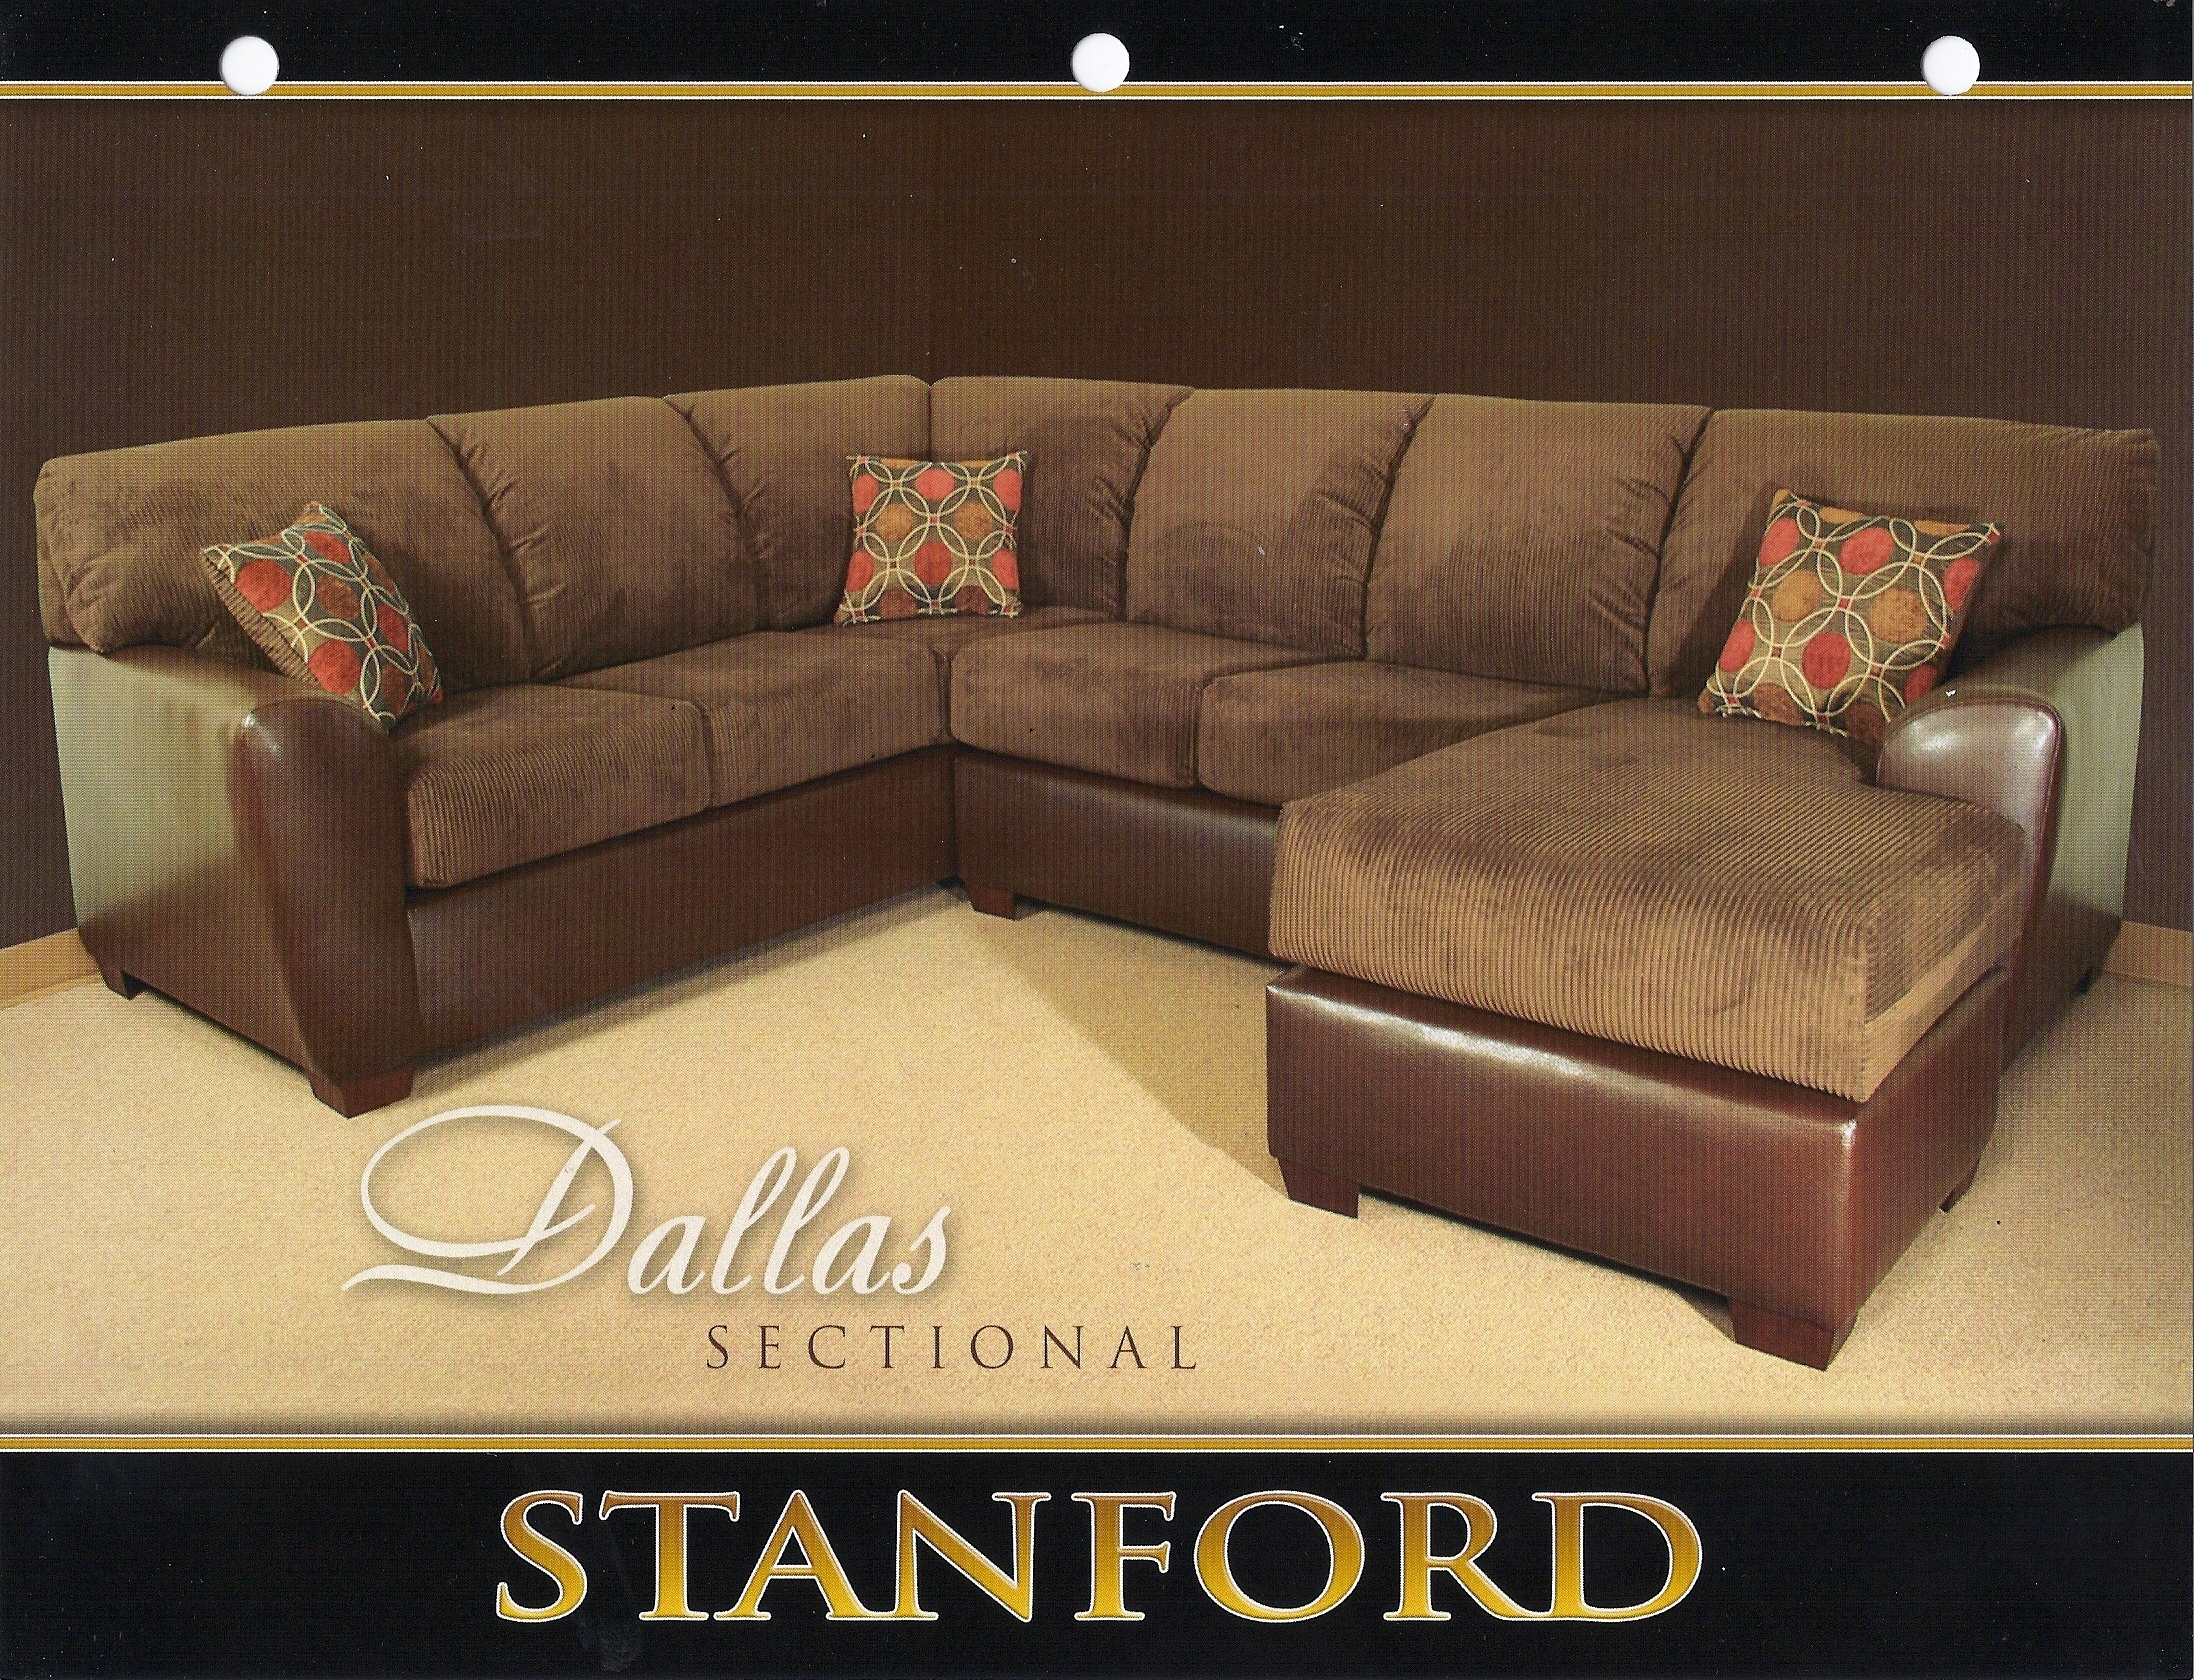 Sectional Sofa Design: Comfort Sectional Sofas Dallas Modern Intended For Dallas Sectional Sofas (Image 7 of 10)